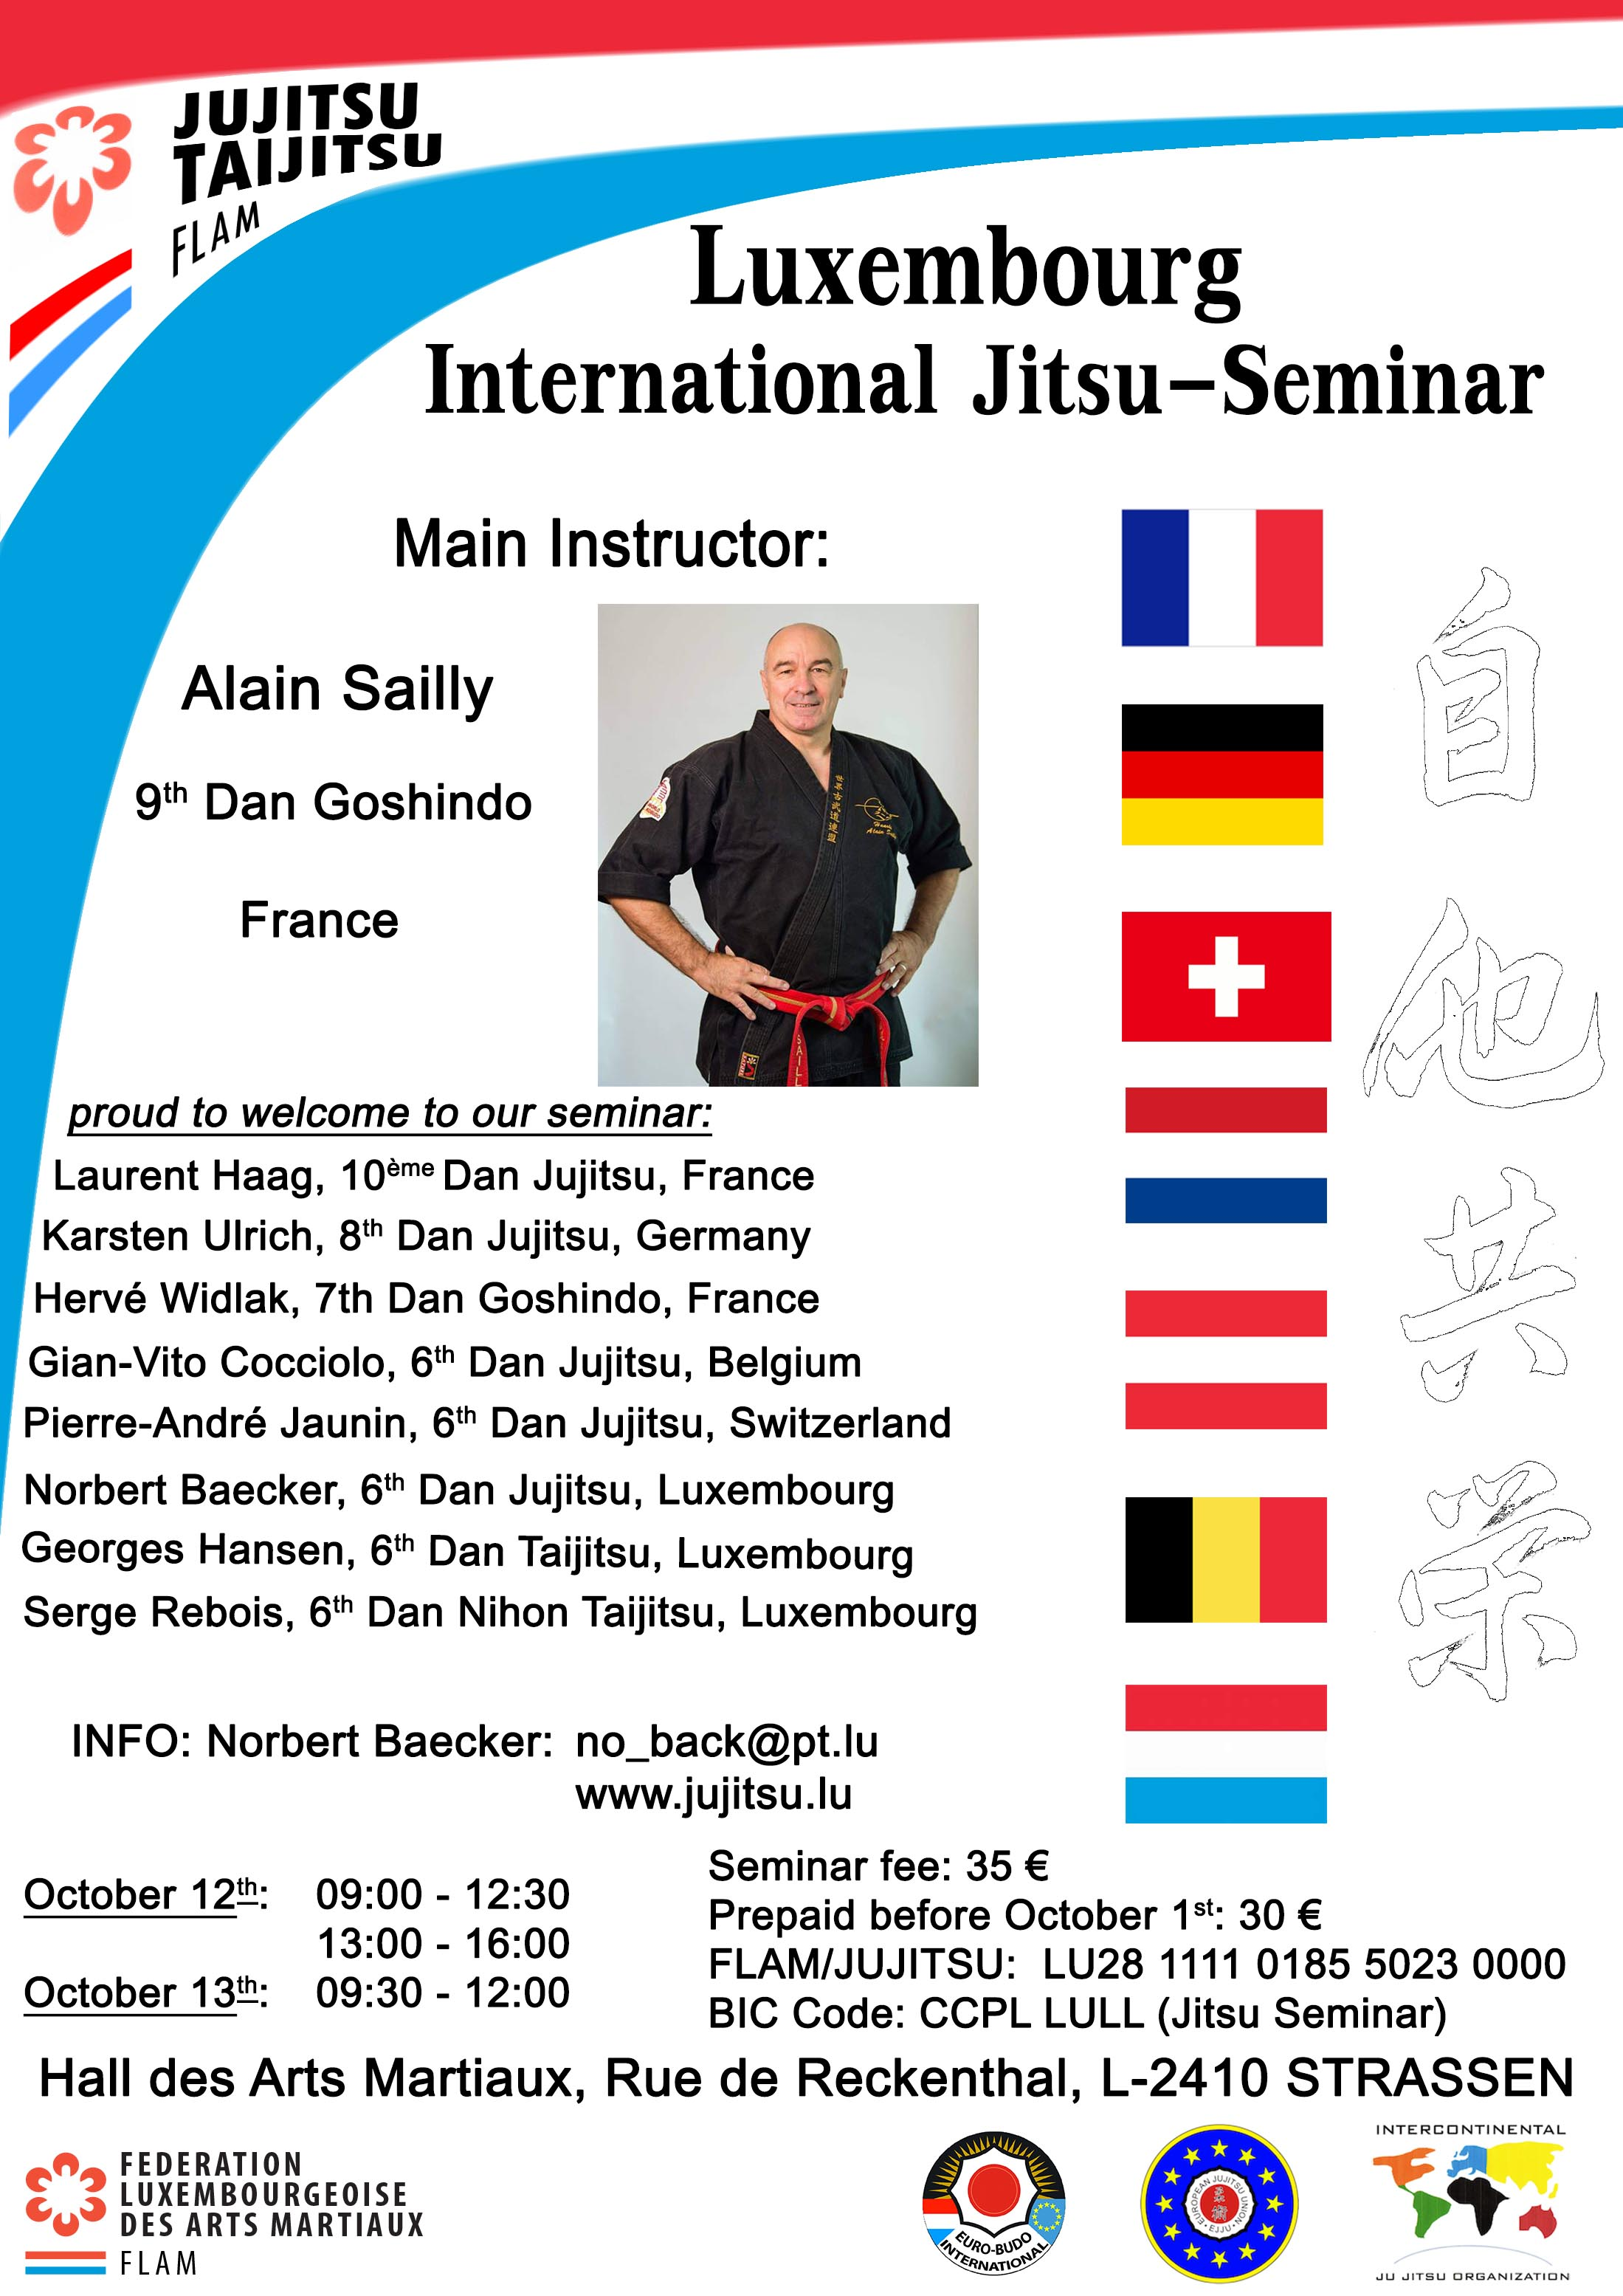 Luxembourg International Jitsu Seminar